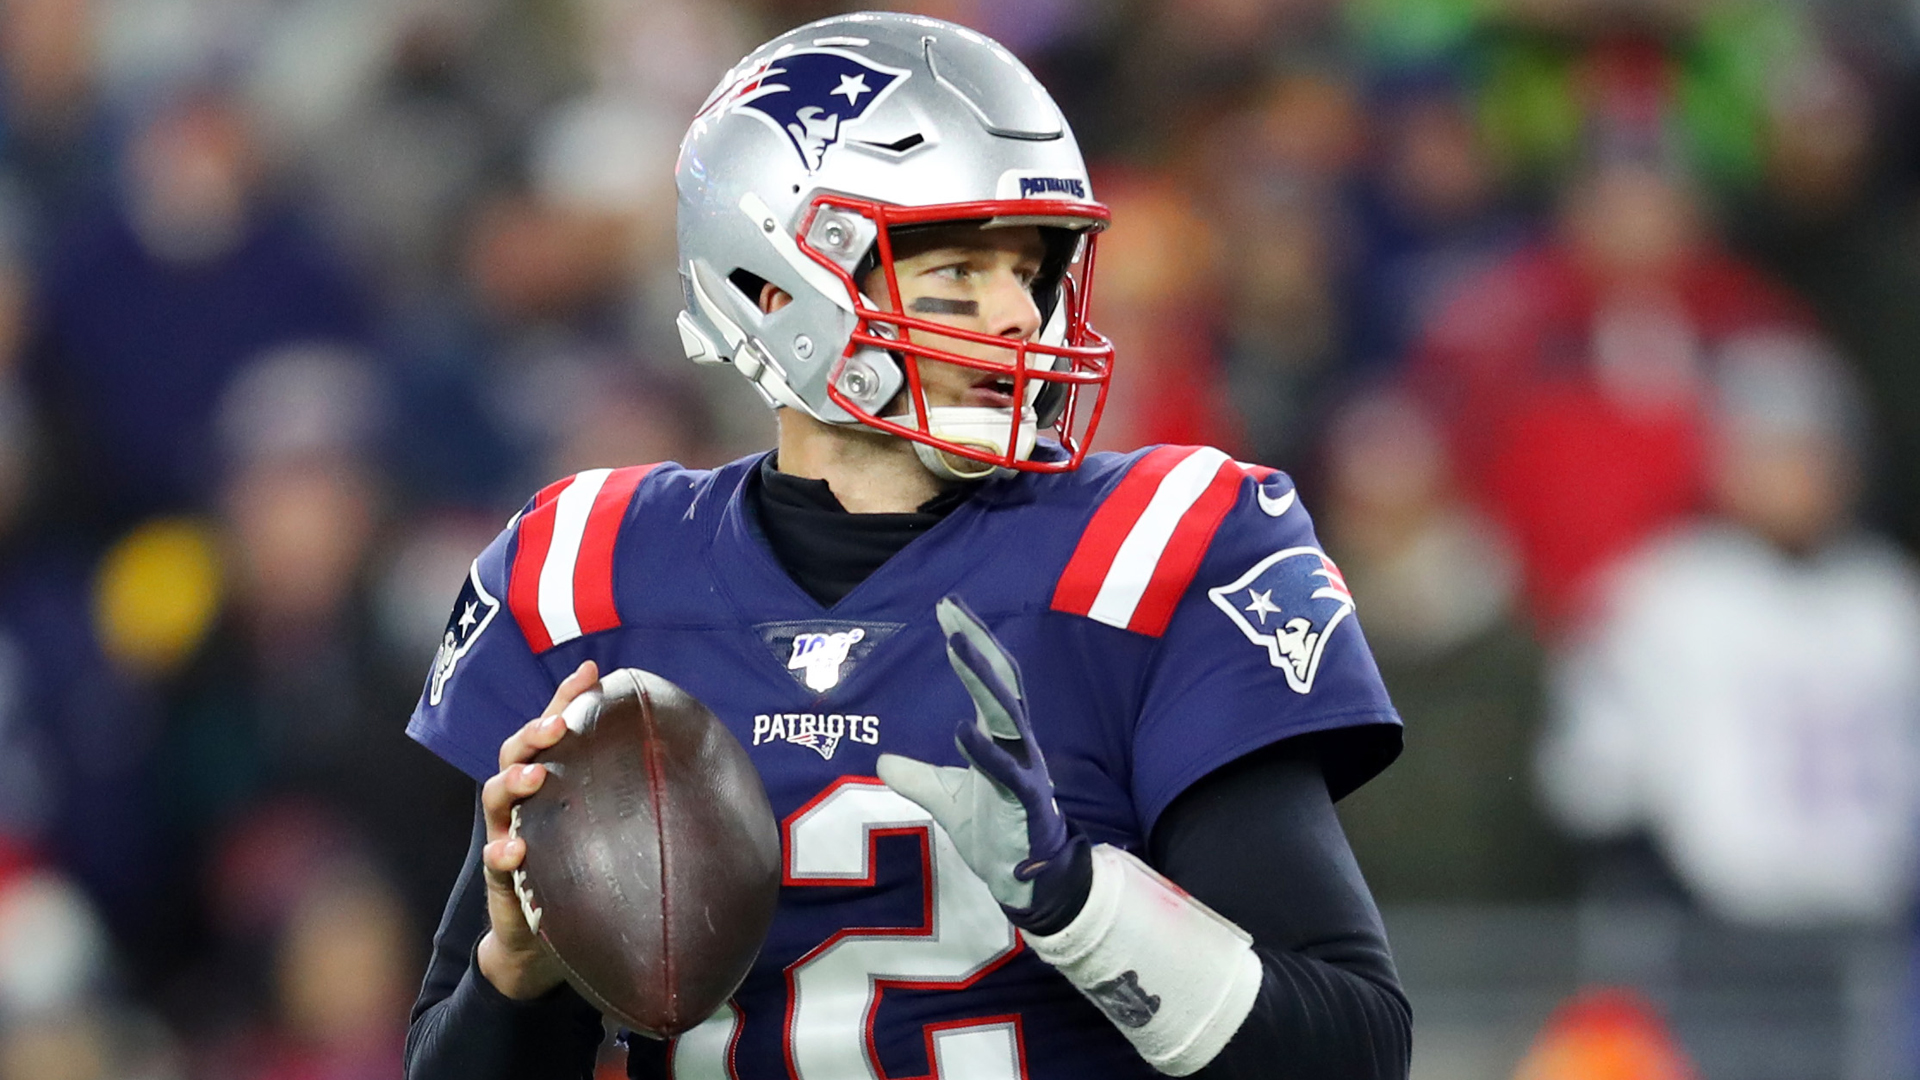 Bruce Arians addressed concerns about Tom Brady, who swapped the New England Patriots for the Tampa Bay Buccaneers.